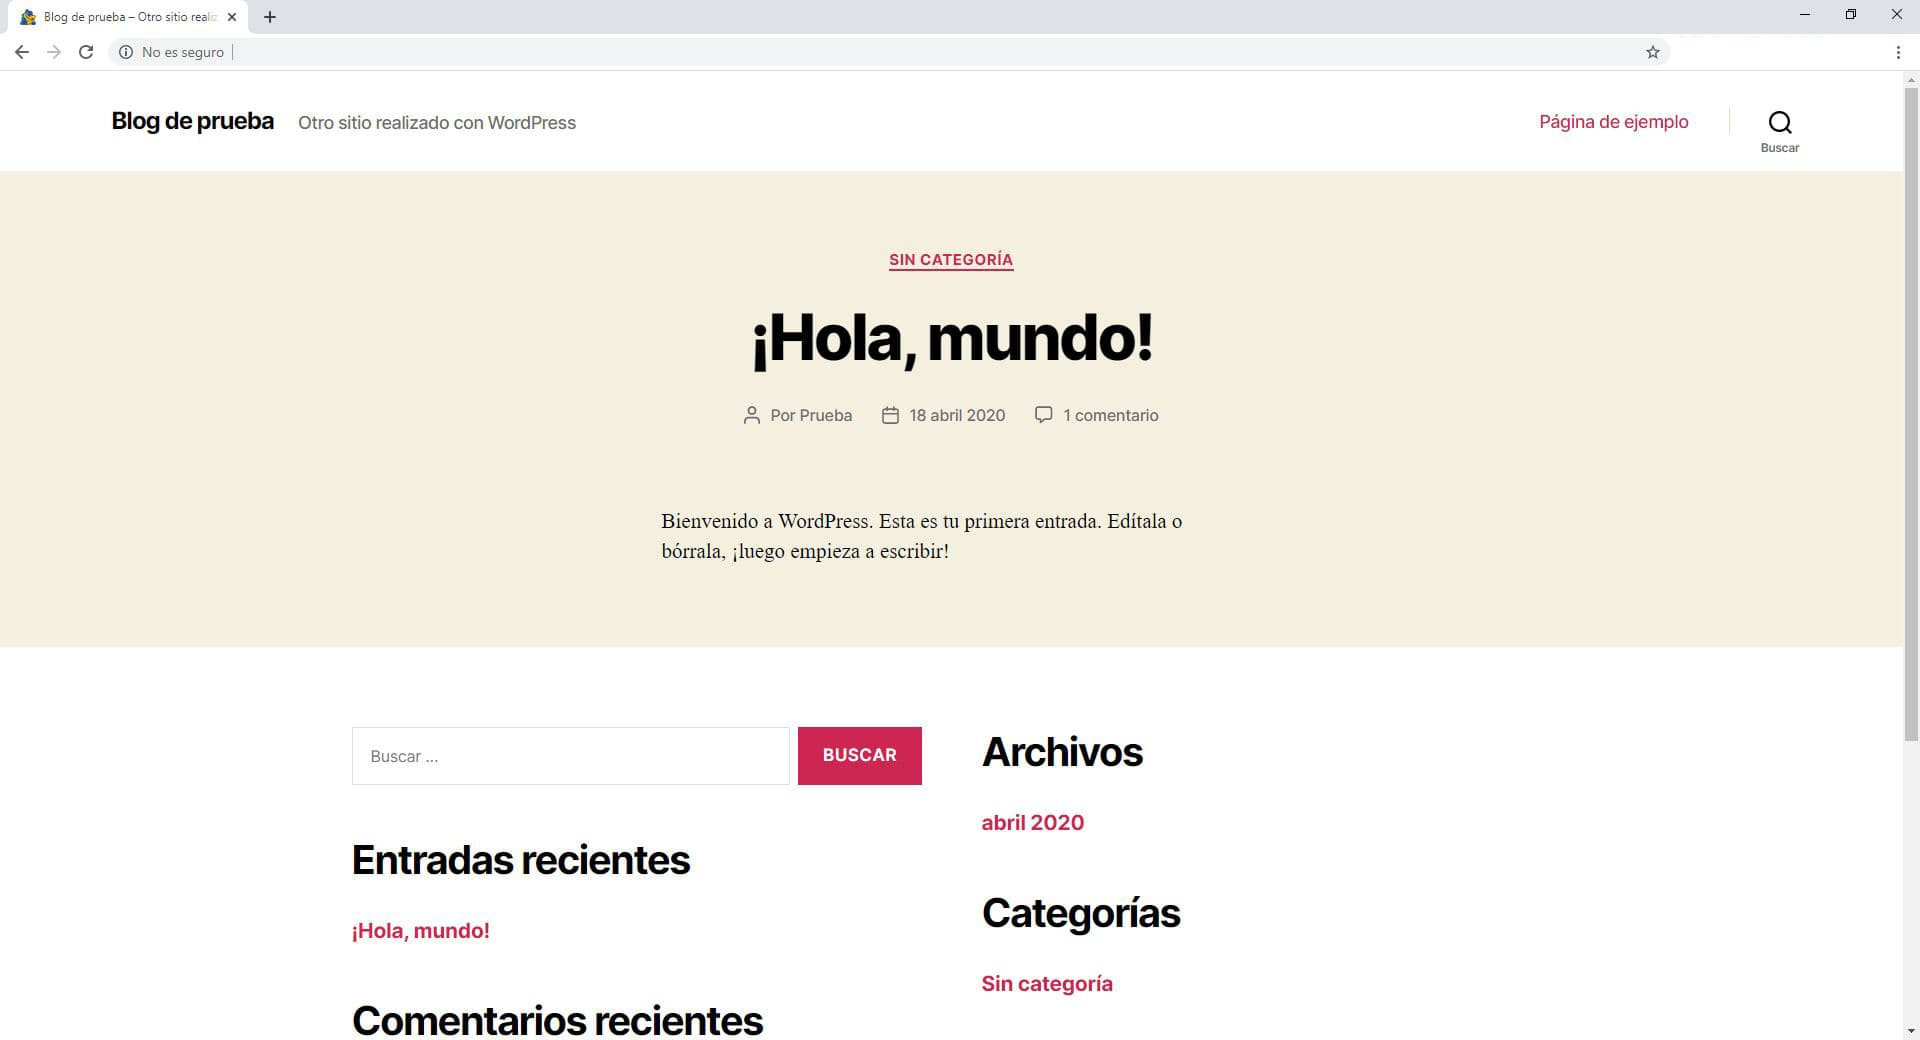 Blog creado con Wordpress